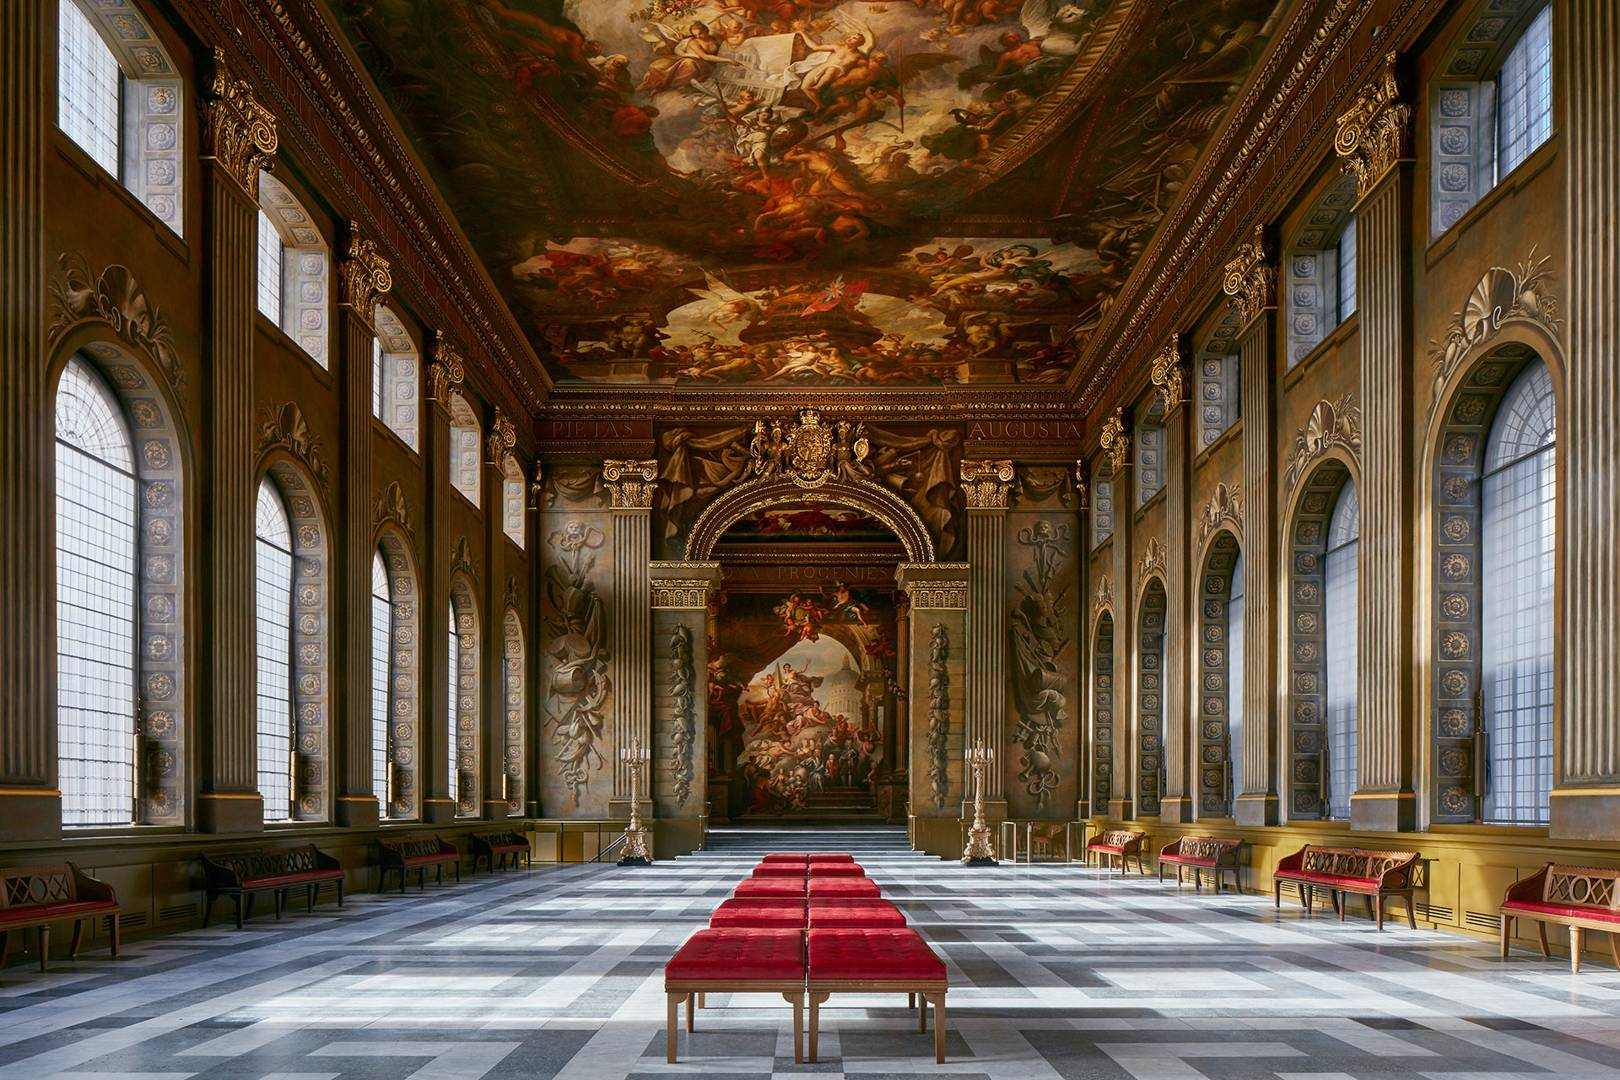 In the Frame: The Painted Hall of the Old Royal Naval College in Greenwich